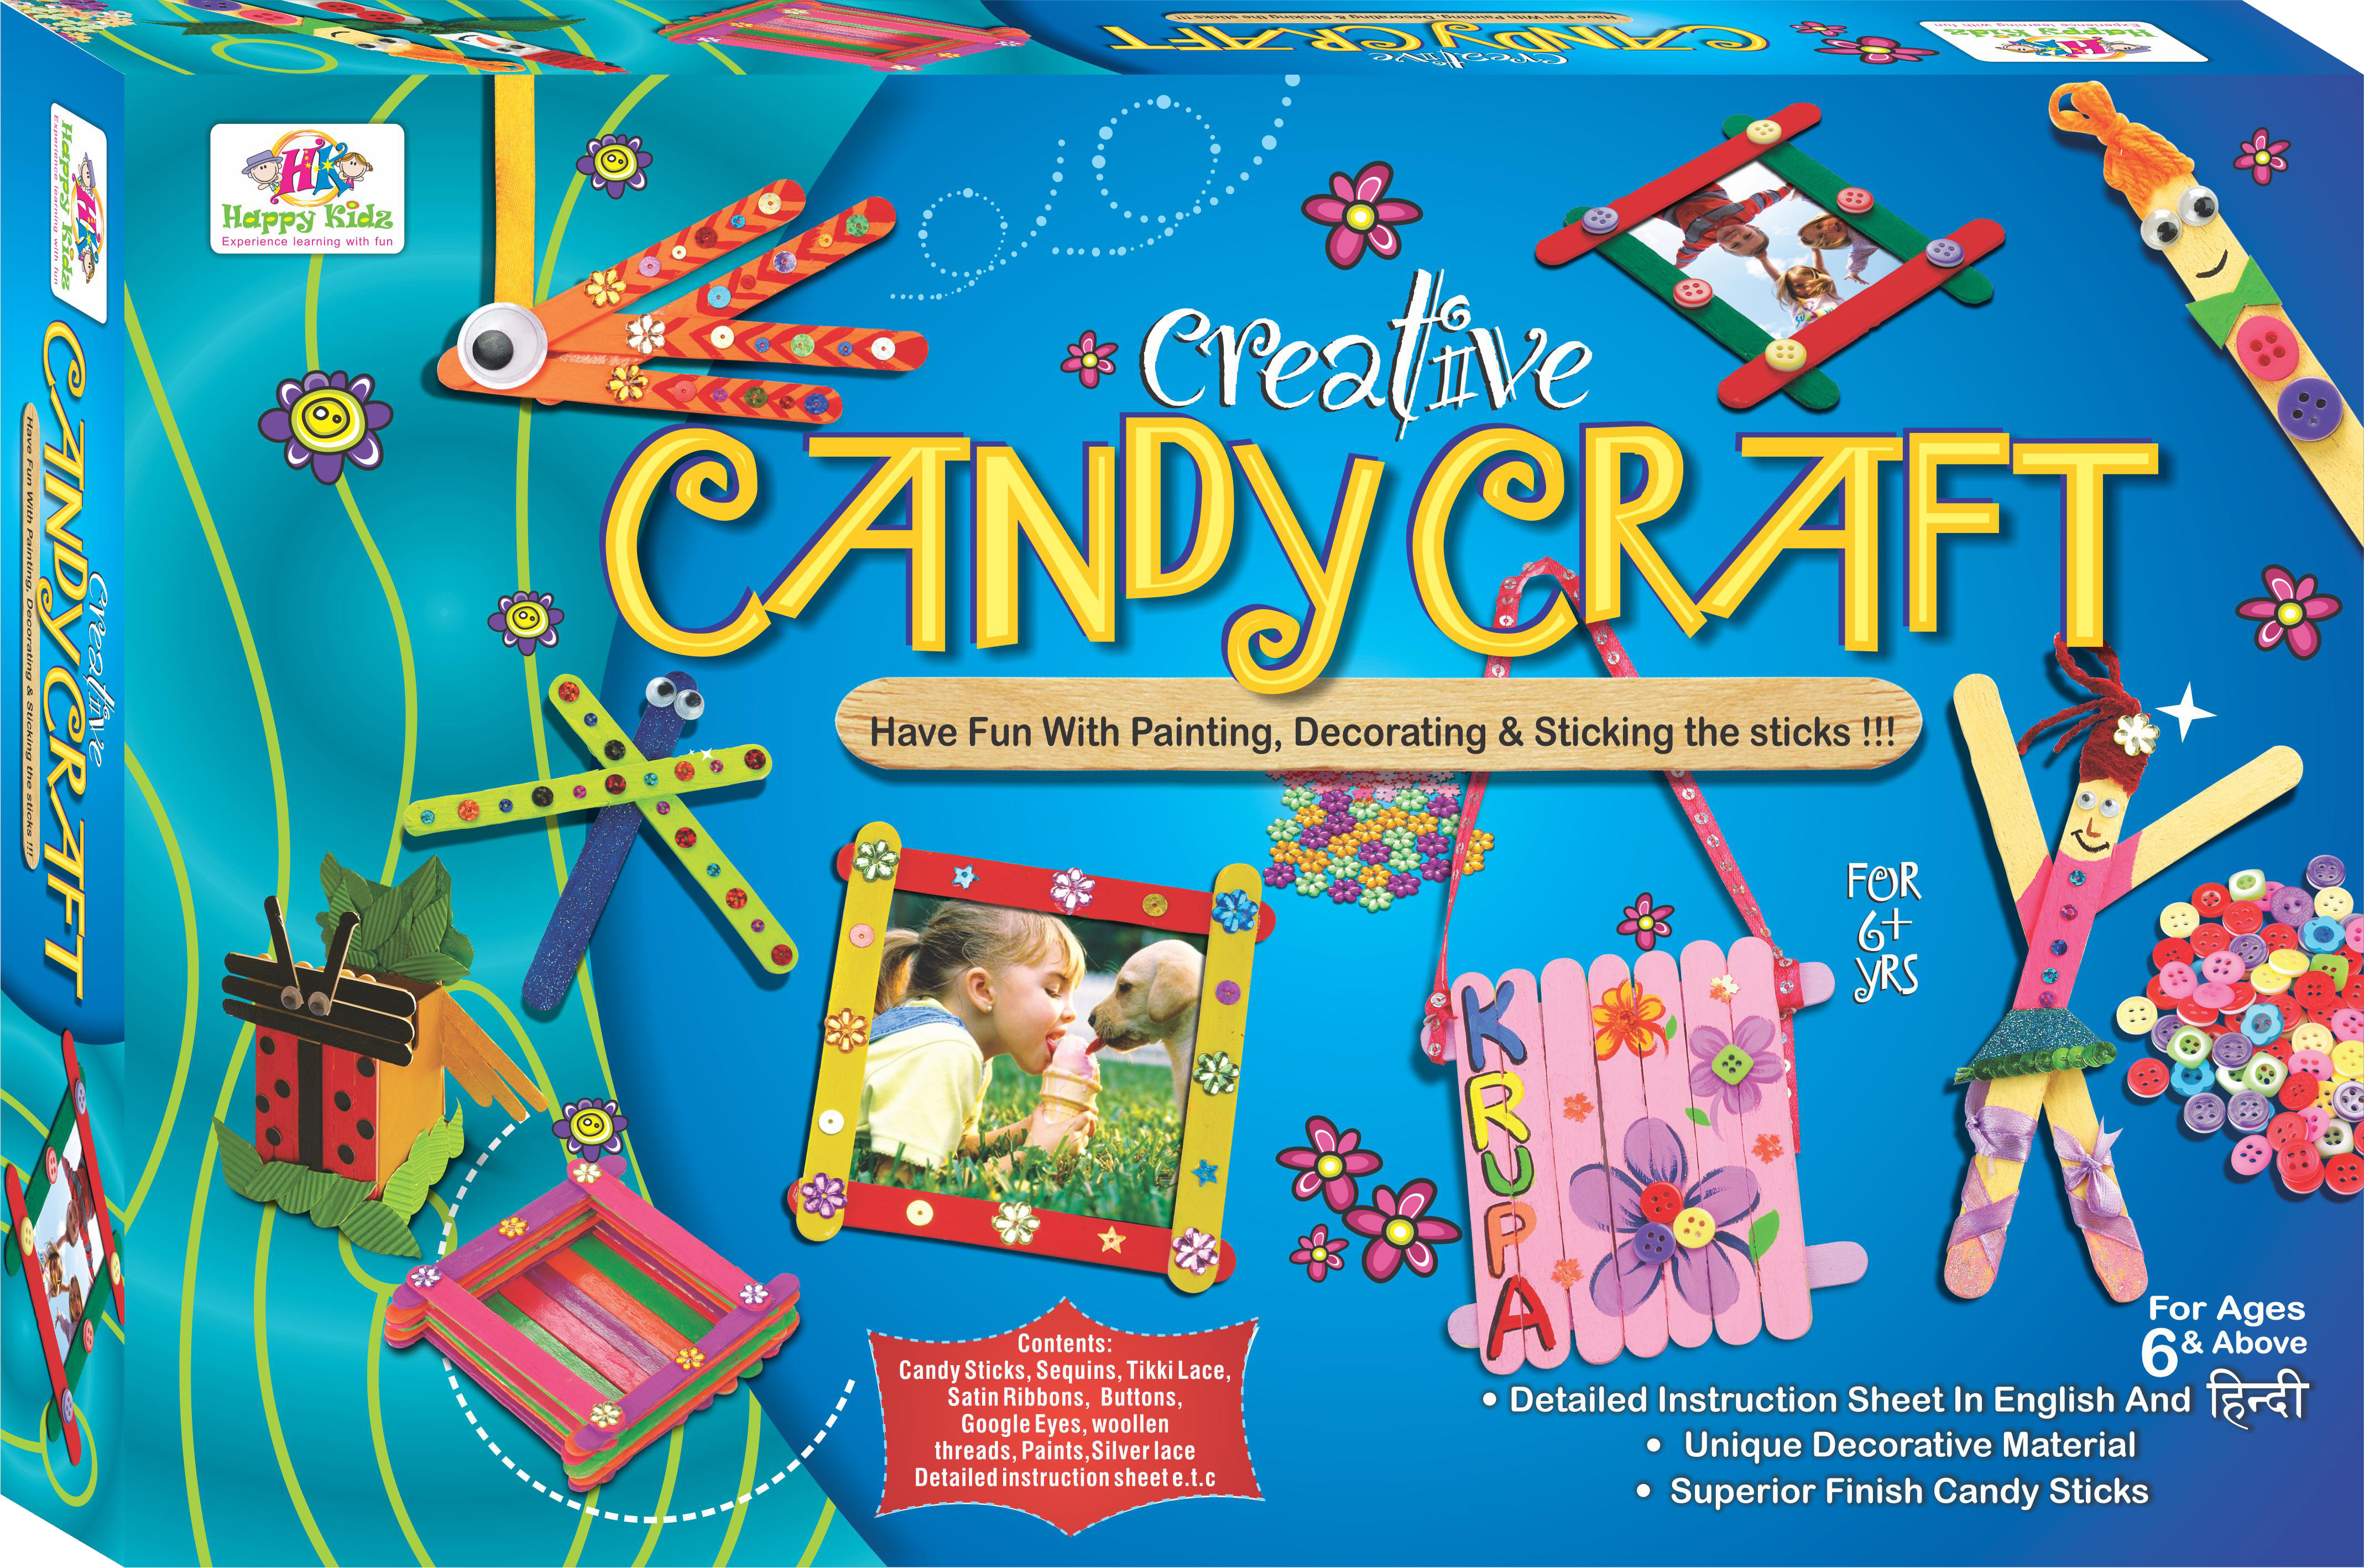 Happy kidz creative candy craft art craft toys for for Craft toys for kids